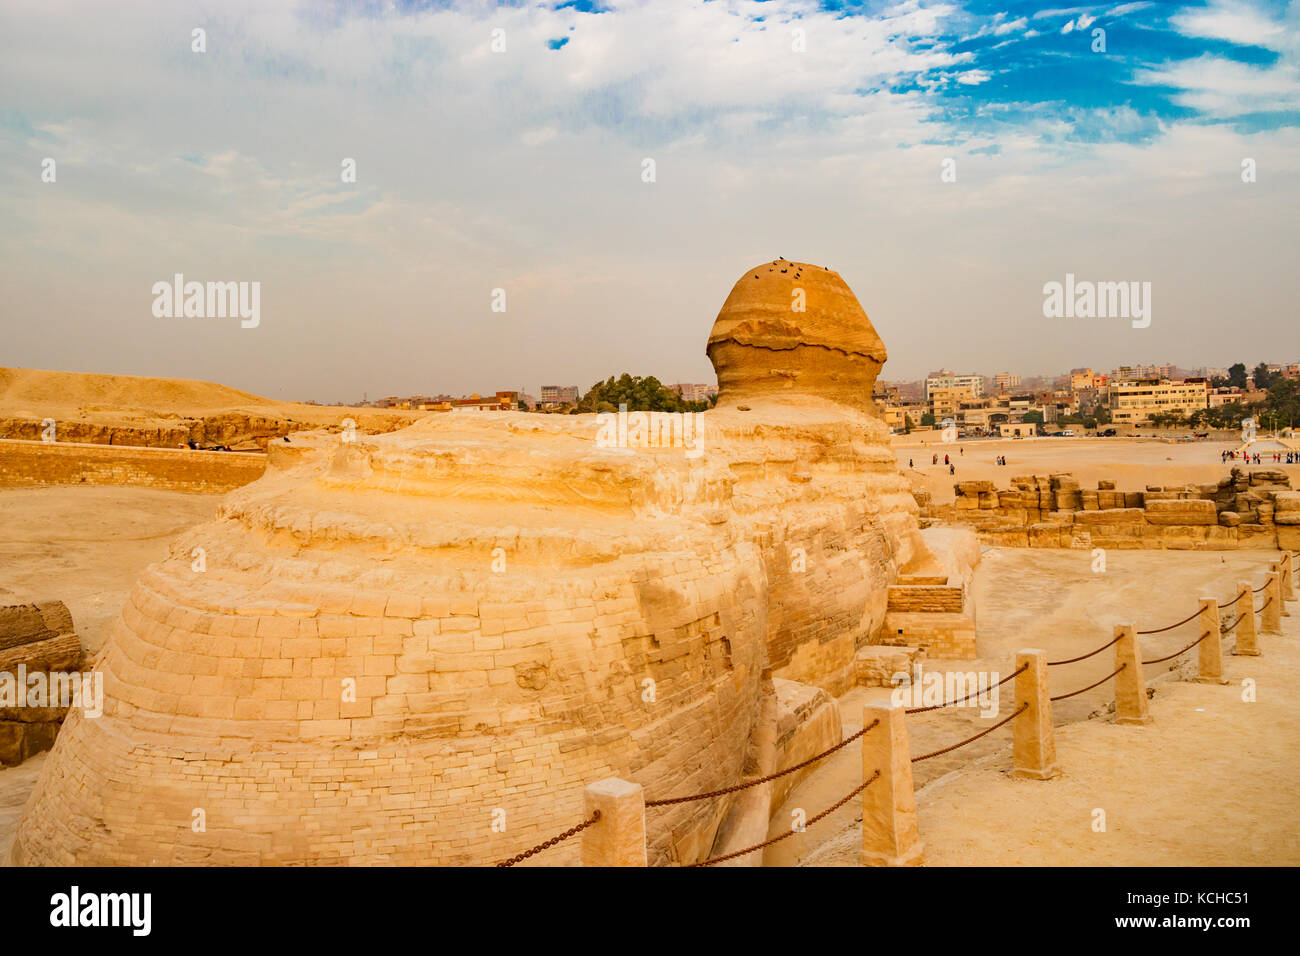 Le sphinx au Caire, Egypte Photo Stock